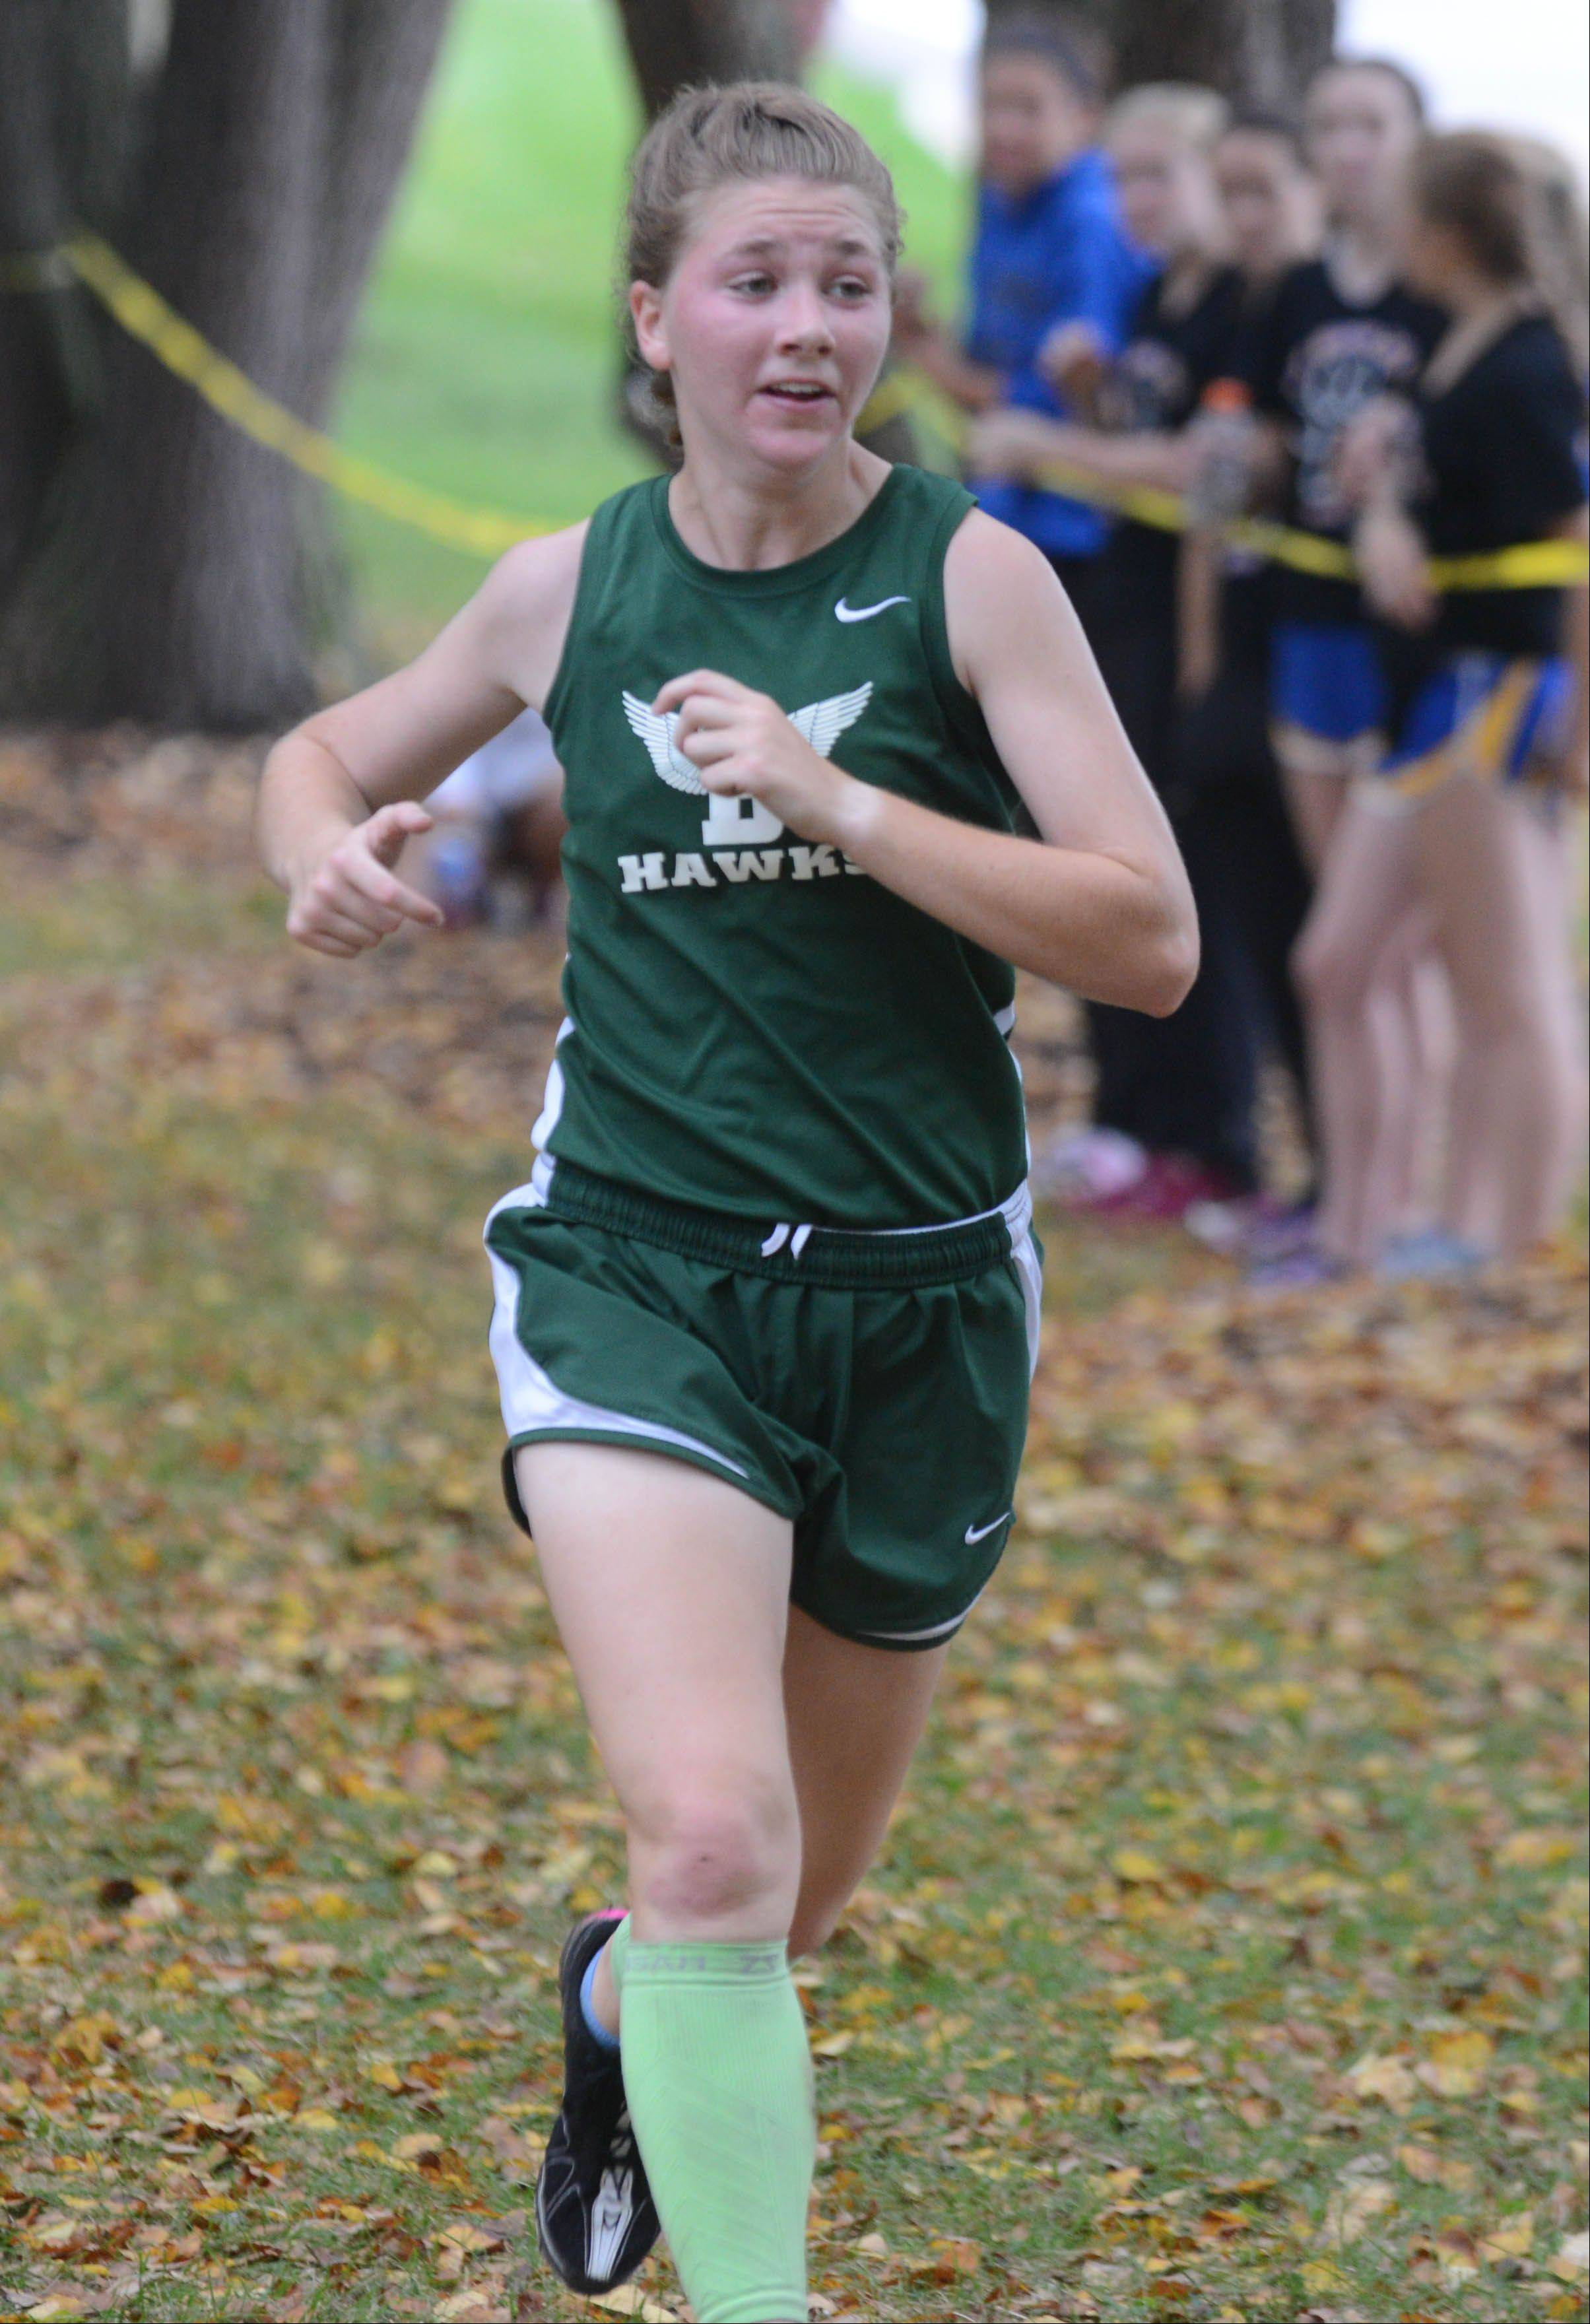 Mariah Brown of Bartlett took part in the Wheaton North girls cross country invitational Saturday in Wheaton.